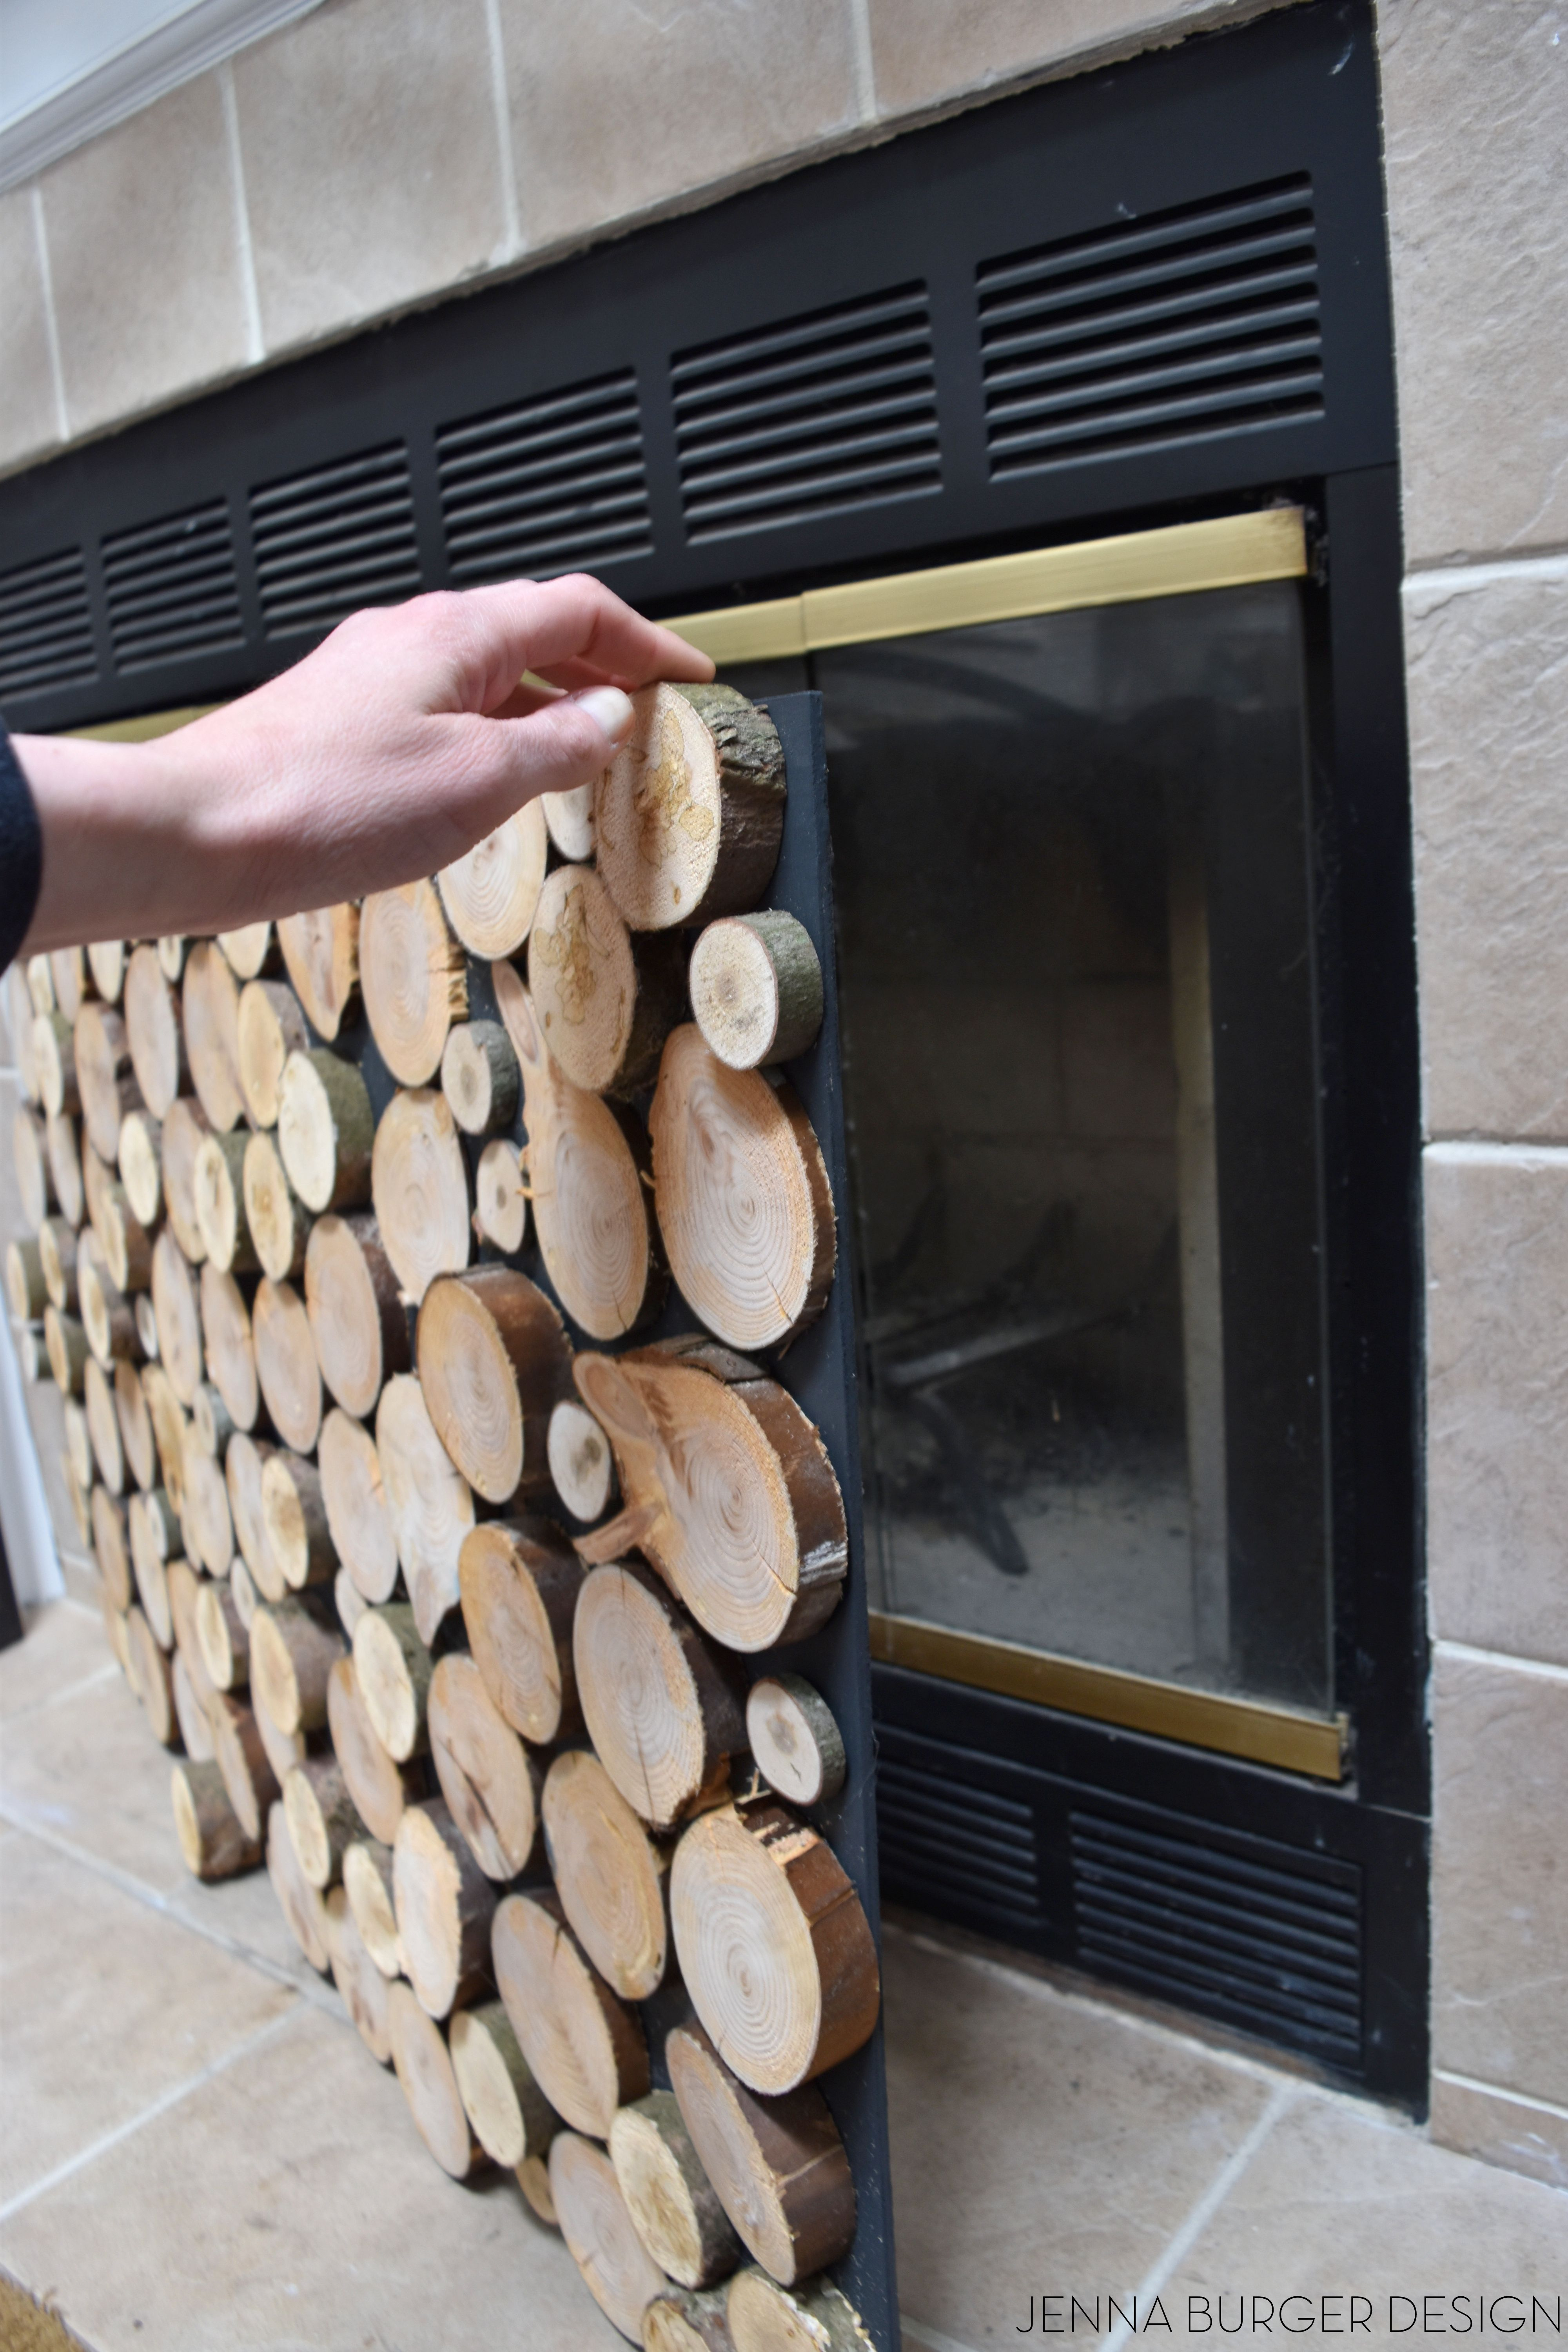 Cover Brick Fireplace With Wood Panels Diy Tutorial On How To Make A Faux Stacked Log Fireplace